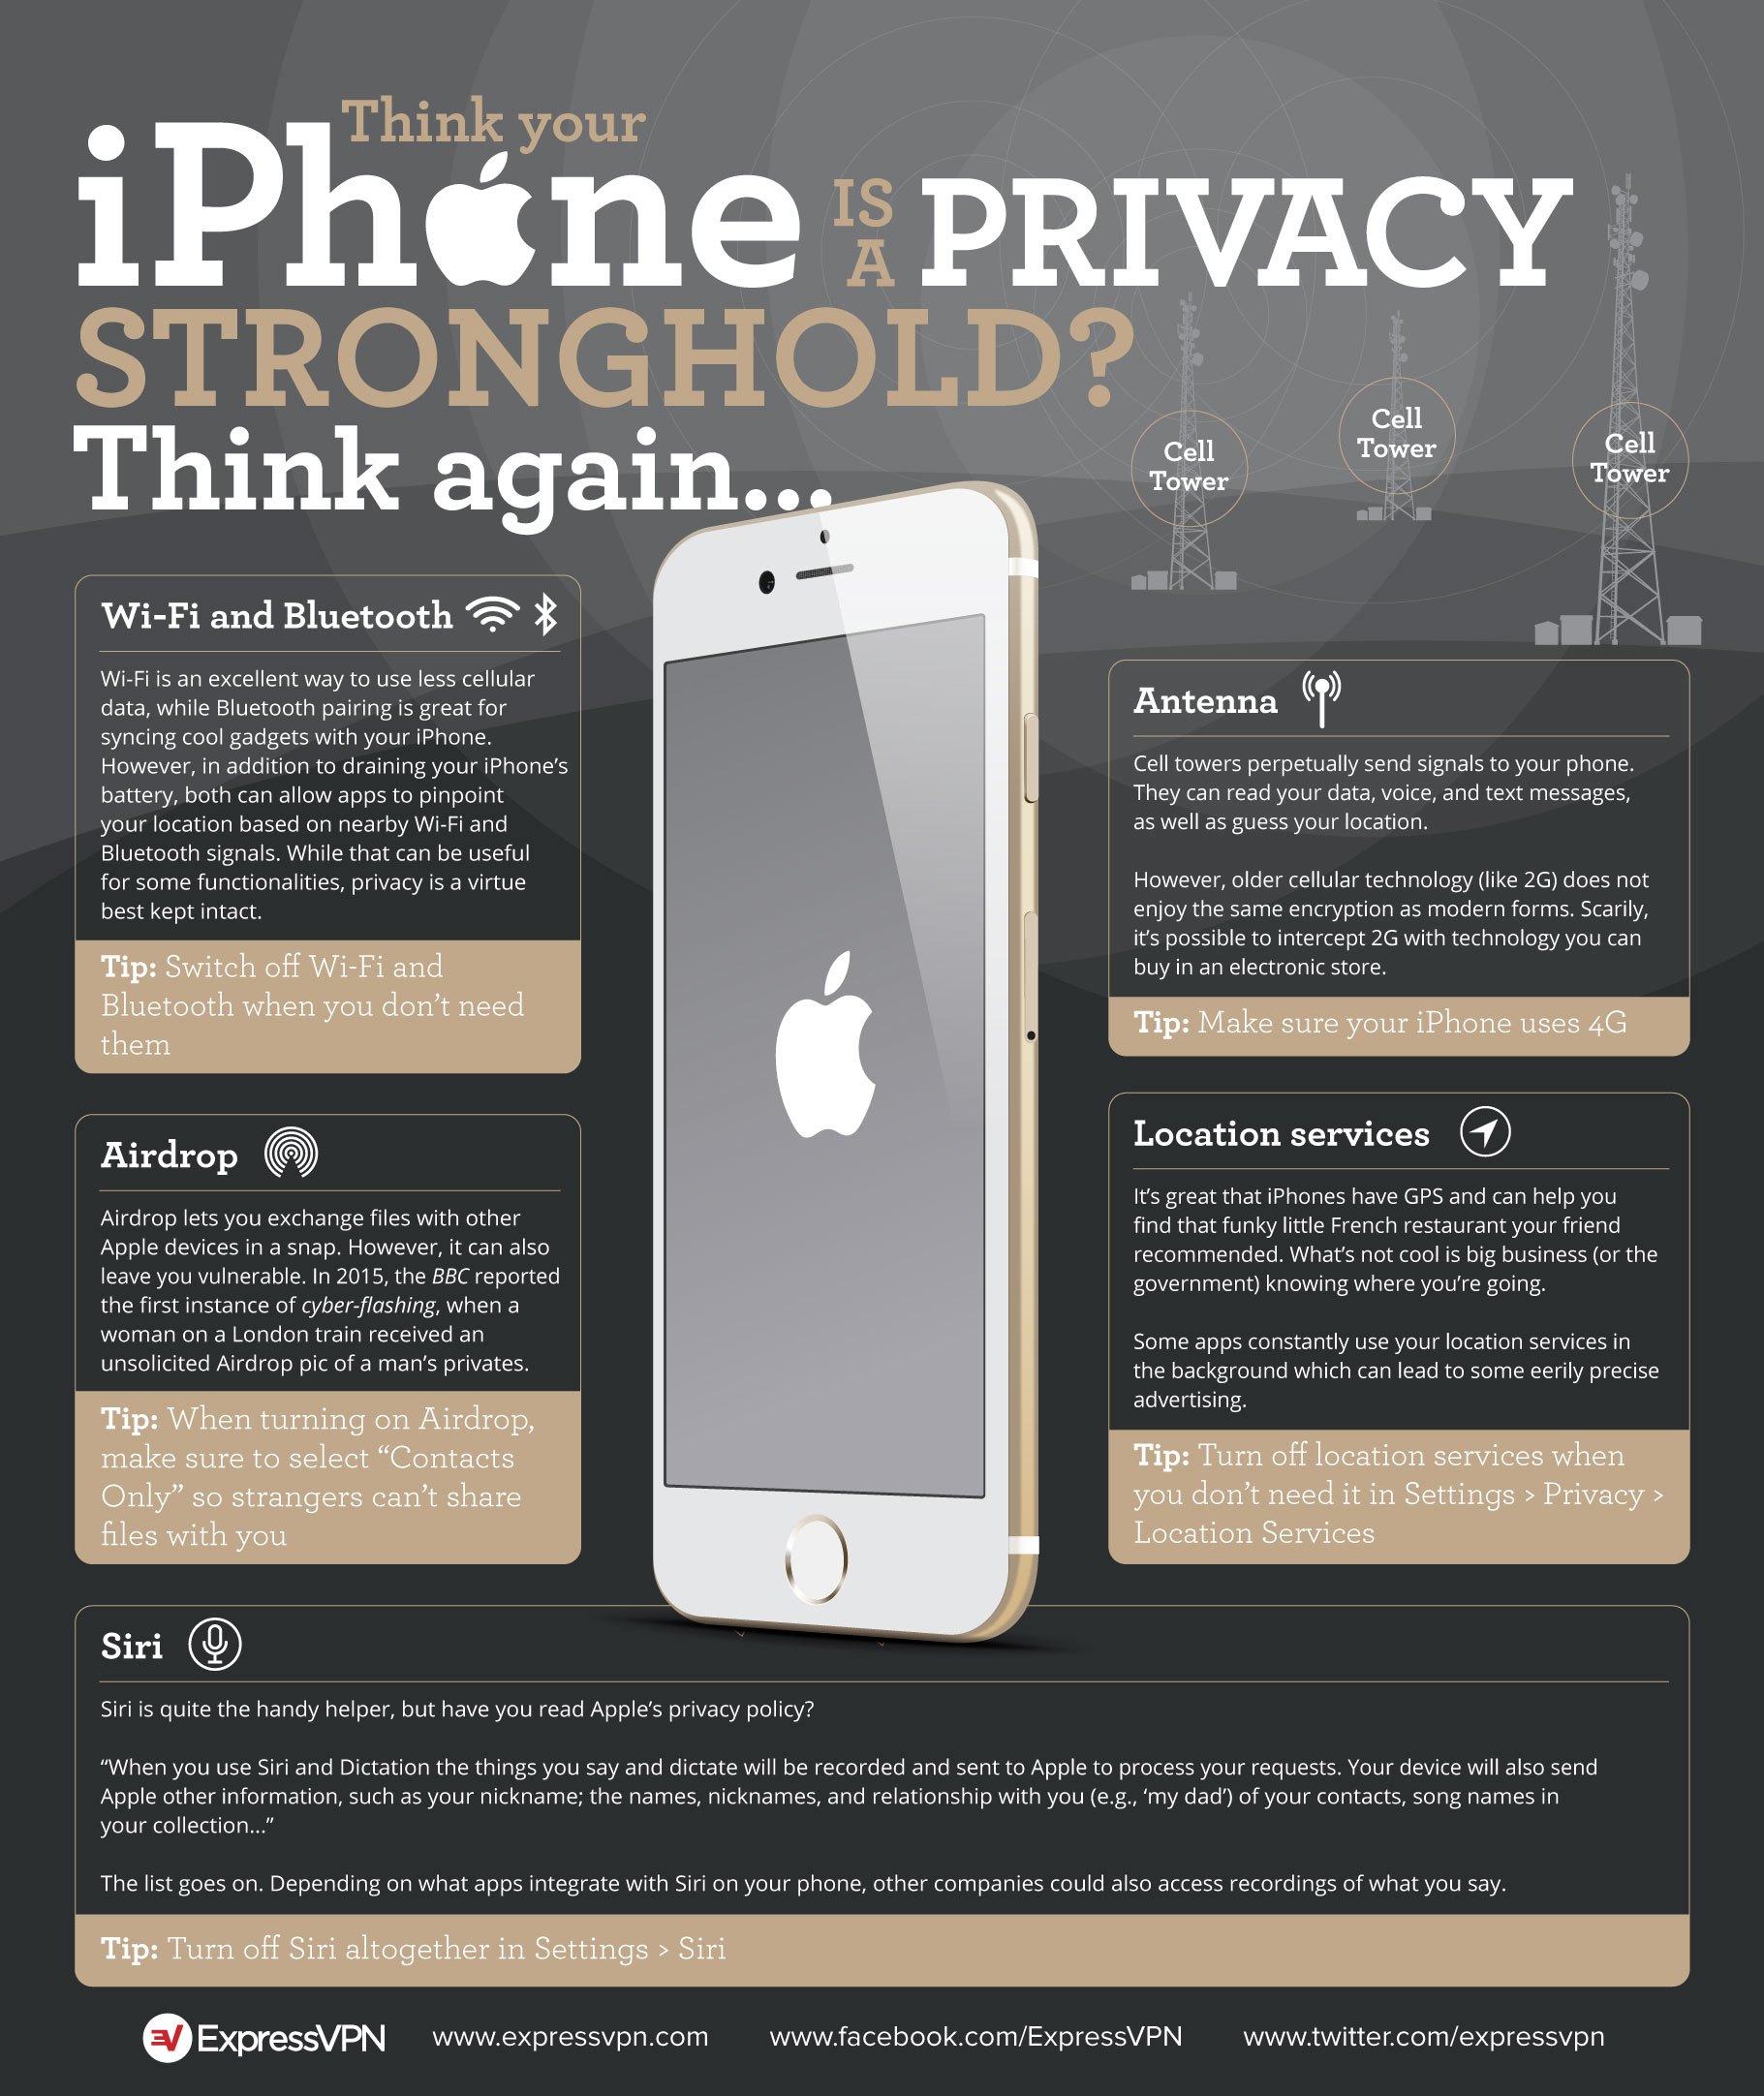 Privacy features we want on our iPhones